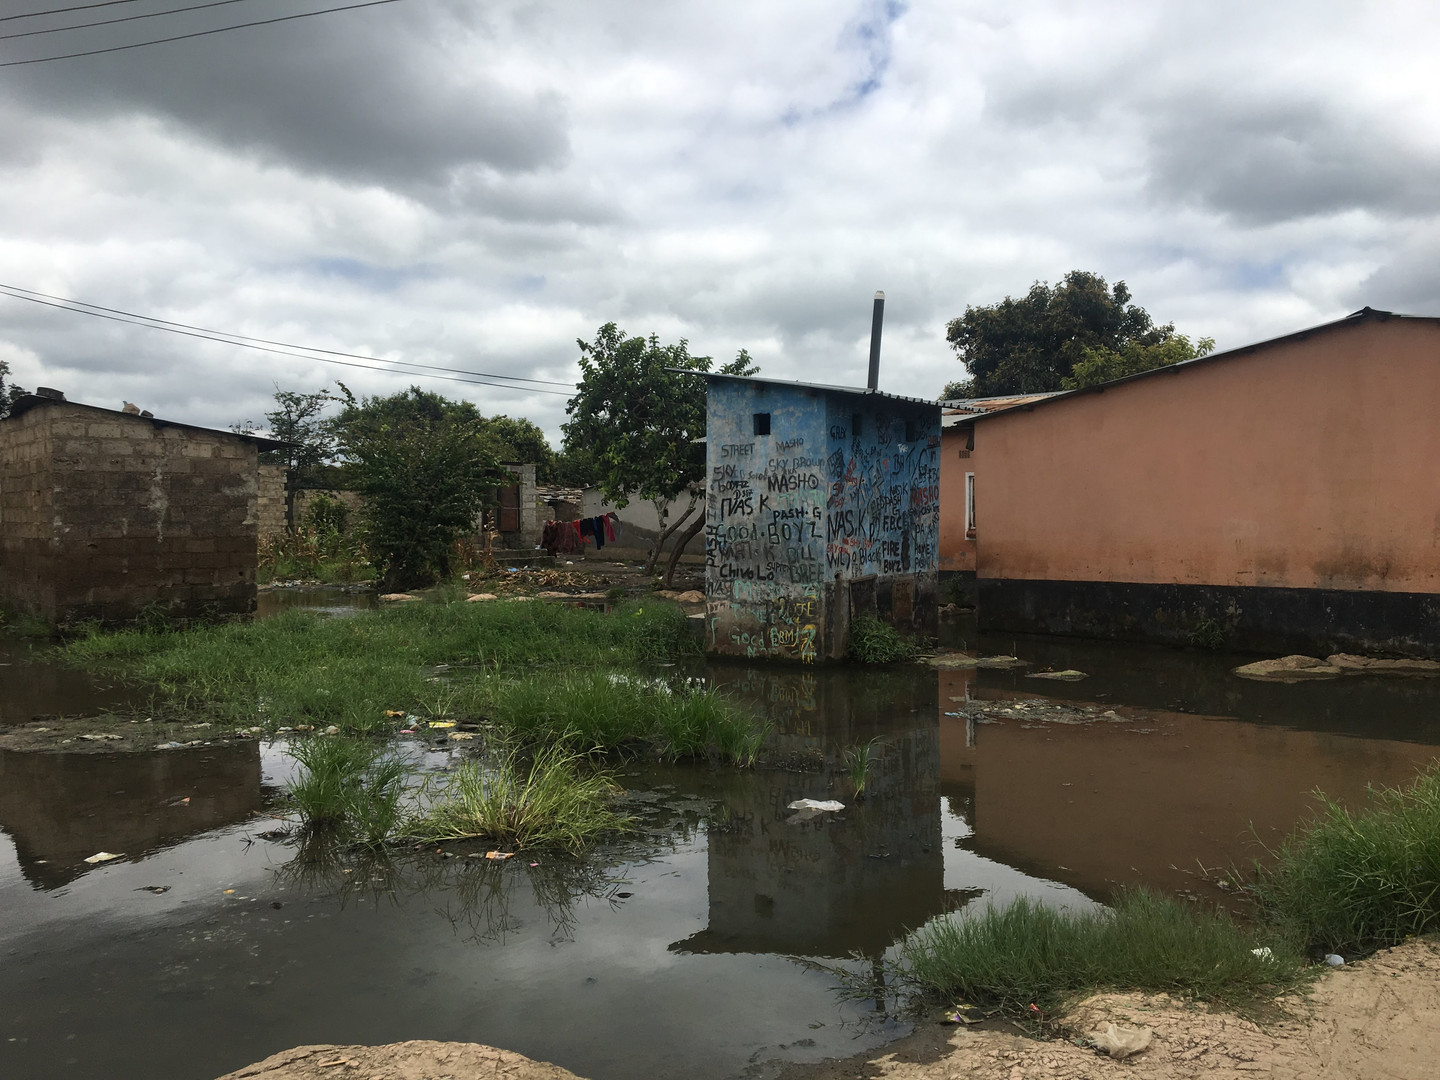 A flooded latrine like this one in Lusaka will be sampled for E. coli in the surrounding waters.